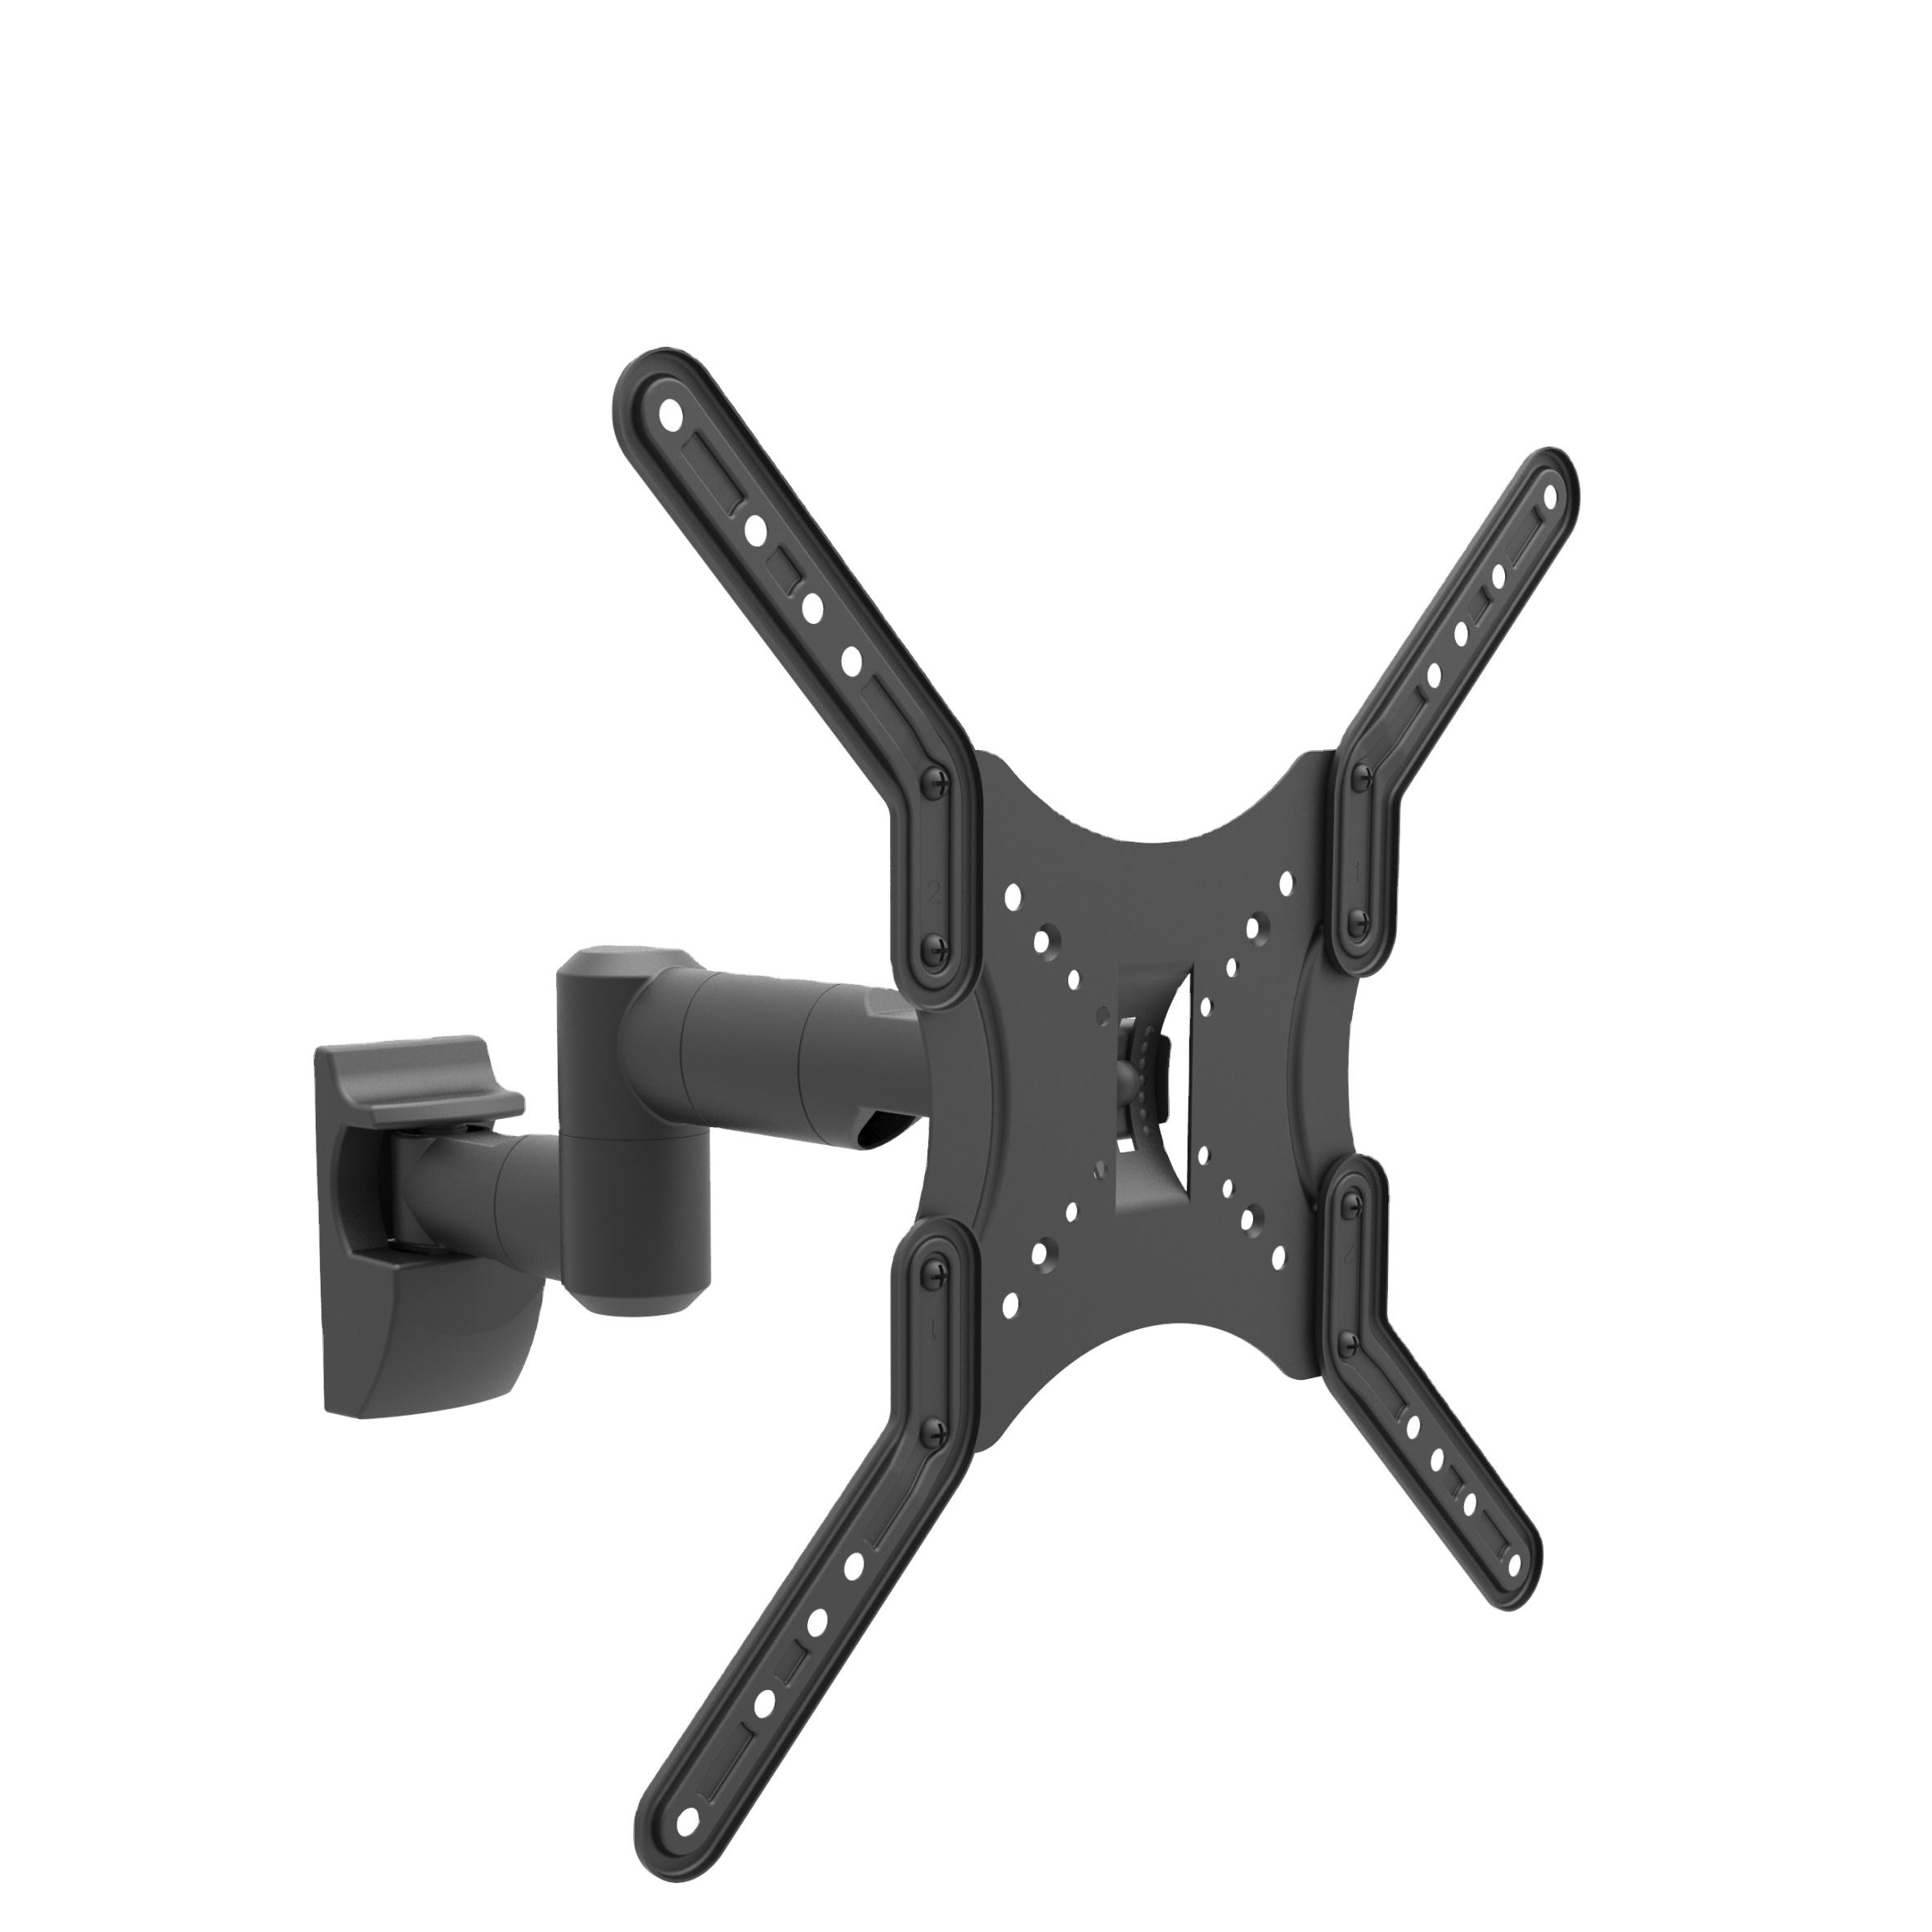 Hot selling 30 kgs/66lbs180 graden verwijderbare Led TV holder wall mount